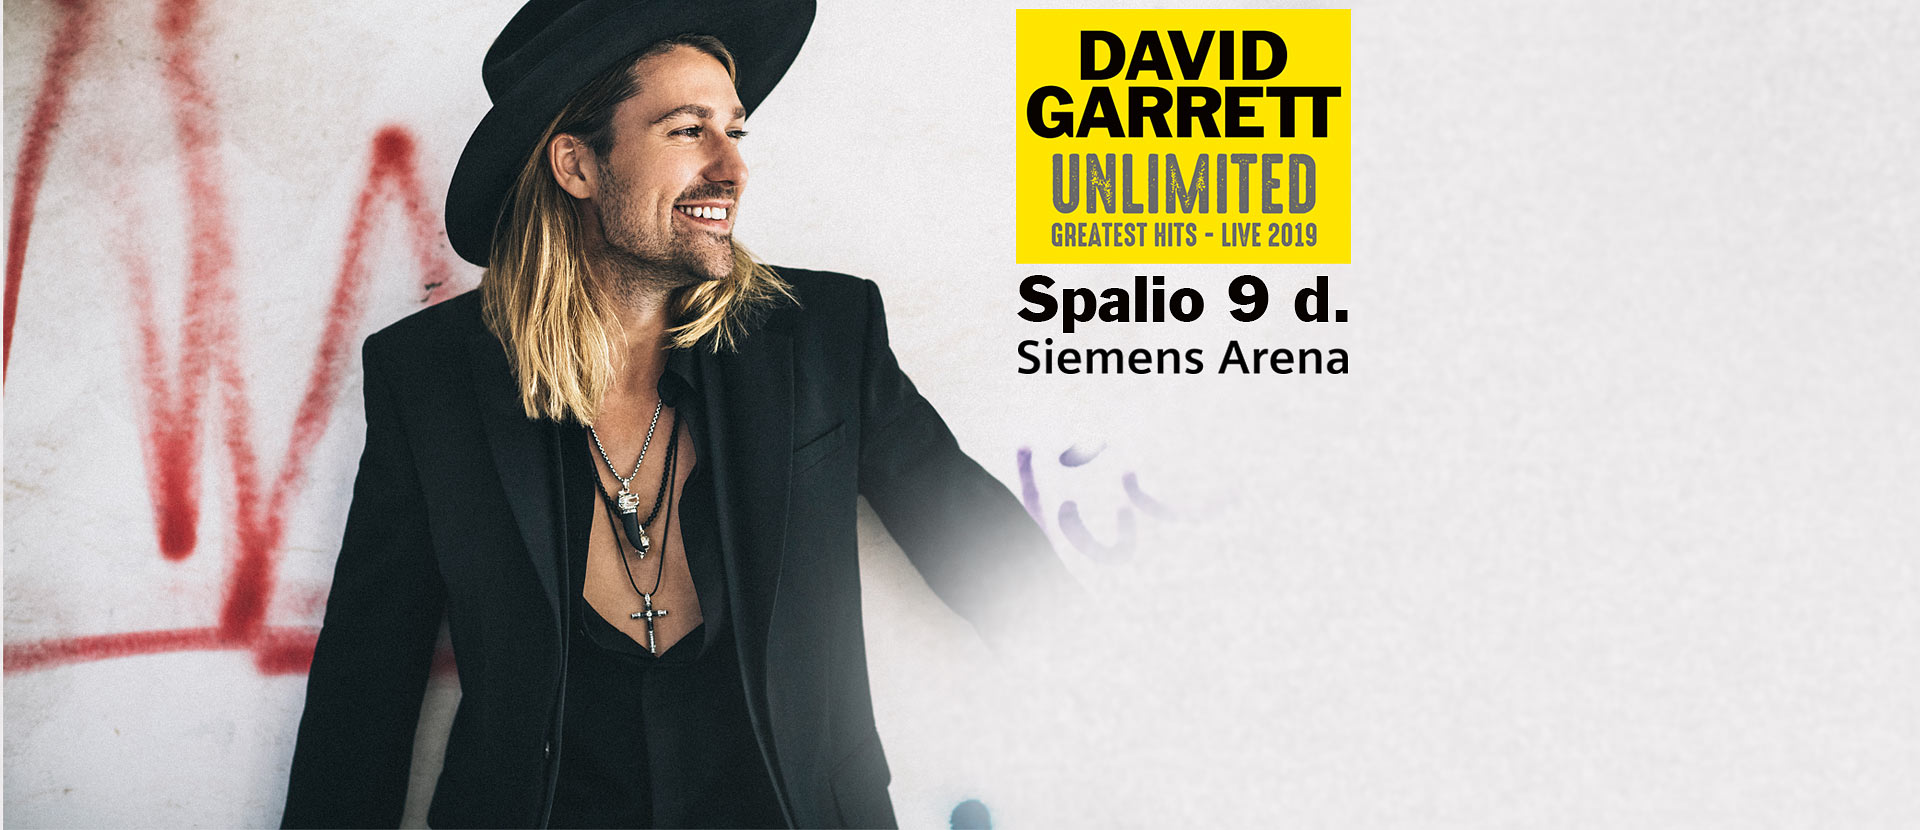 DAVID GARRETT UNLIMITED - GREATEST HITS - LIVE 2019